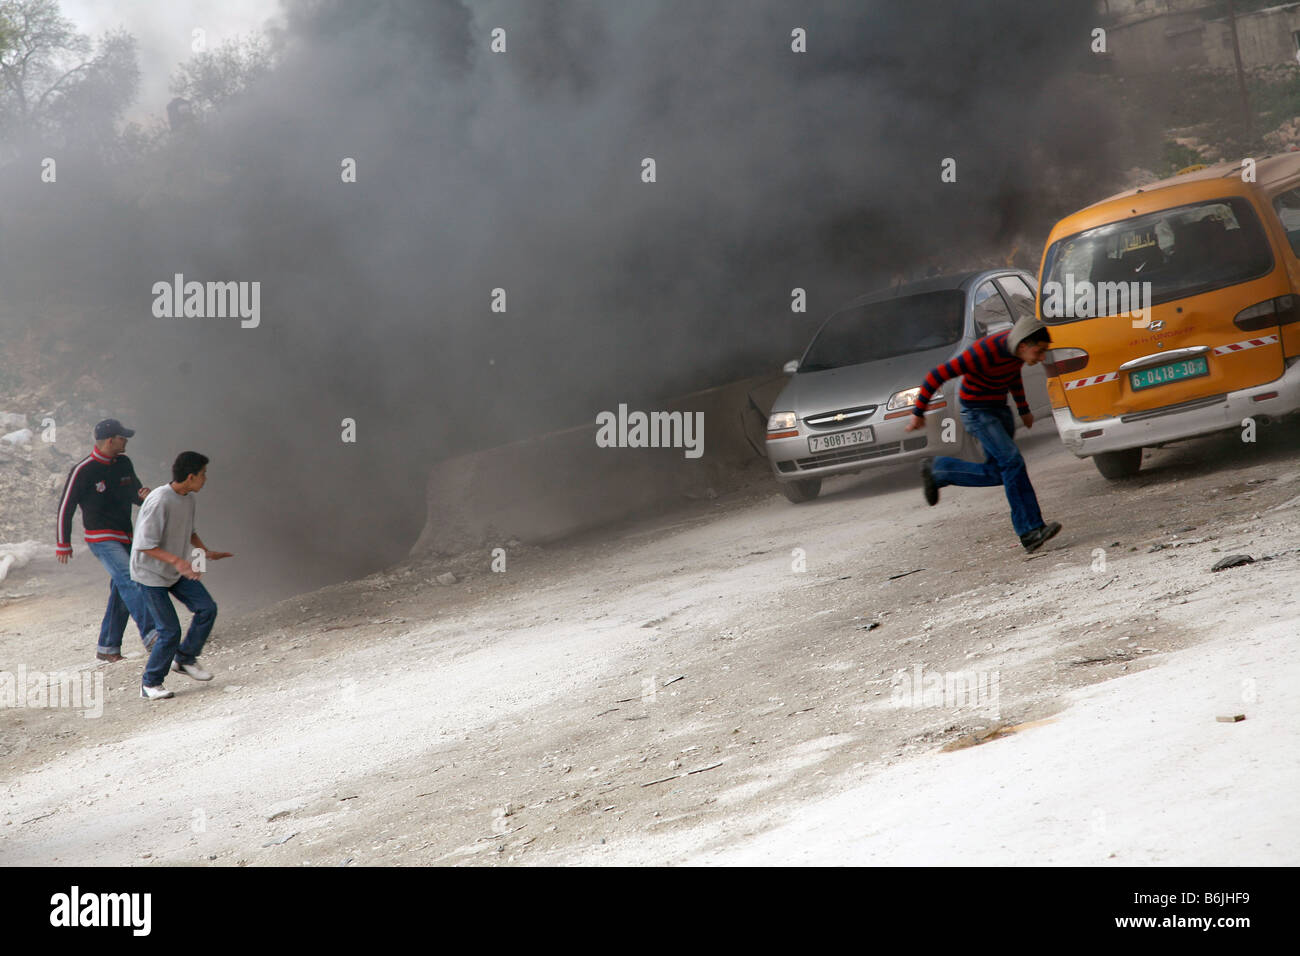 Palestinian youth running from Israeli soldiers during clashes in the West Bank. - Stock Image